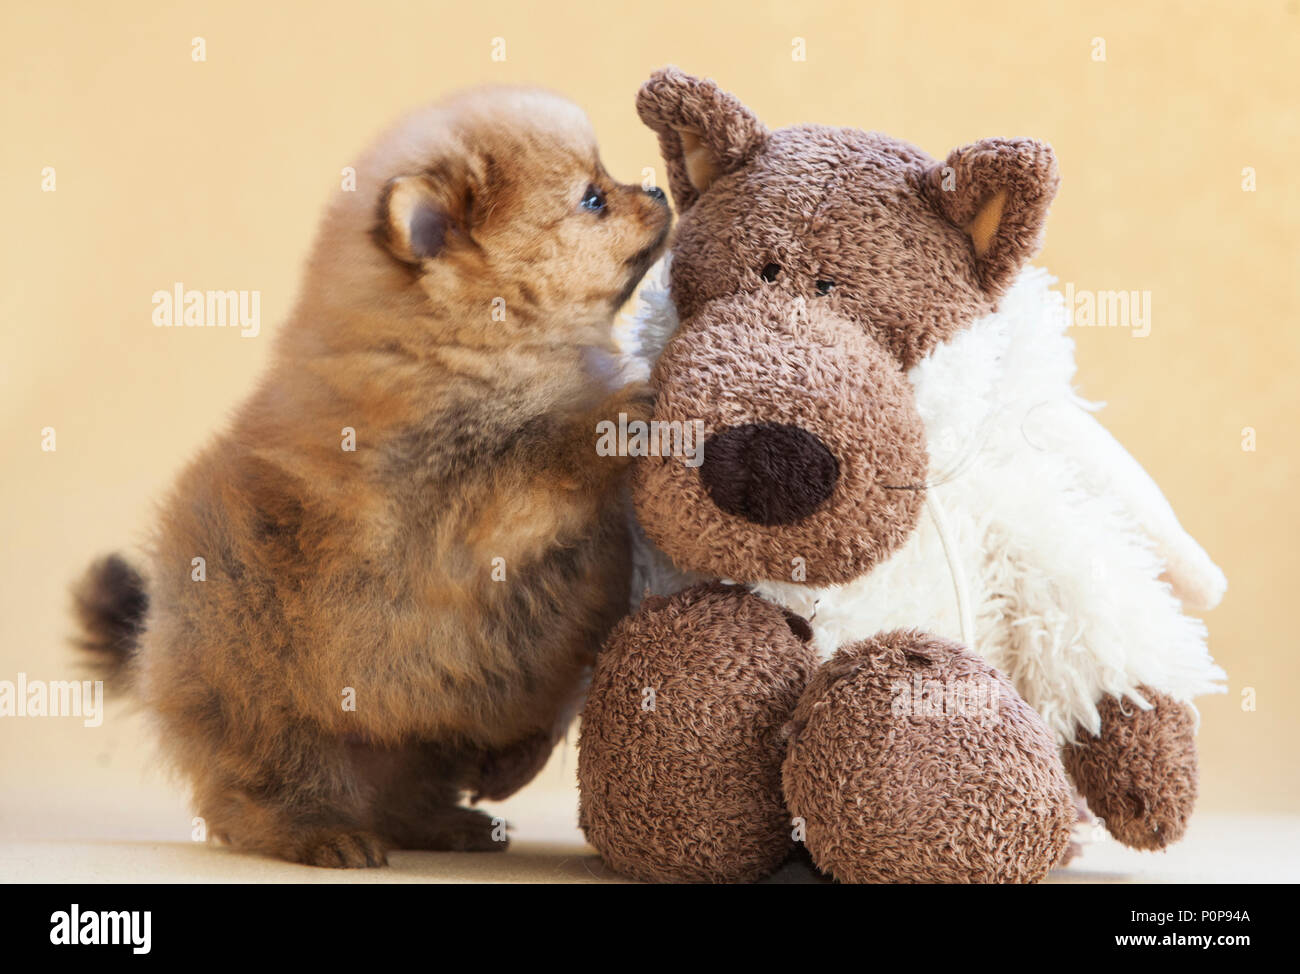 Pomeranian Puppy Dog Playing With A Teddy Bear Stock Photo